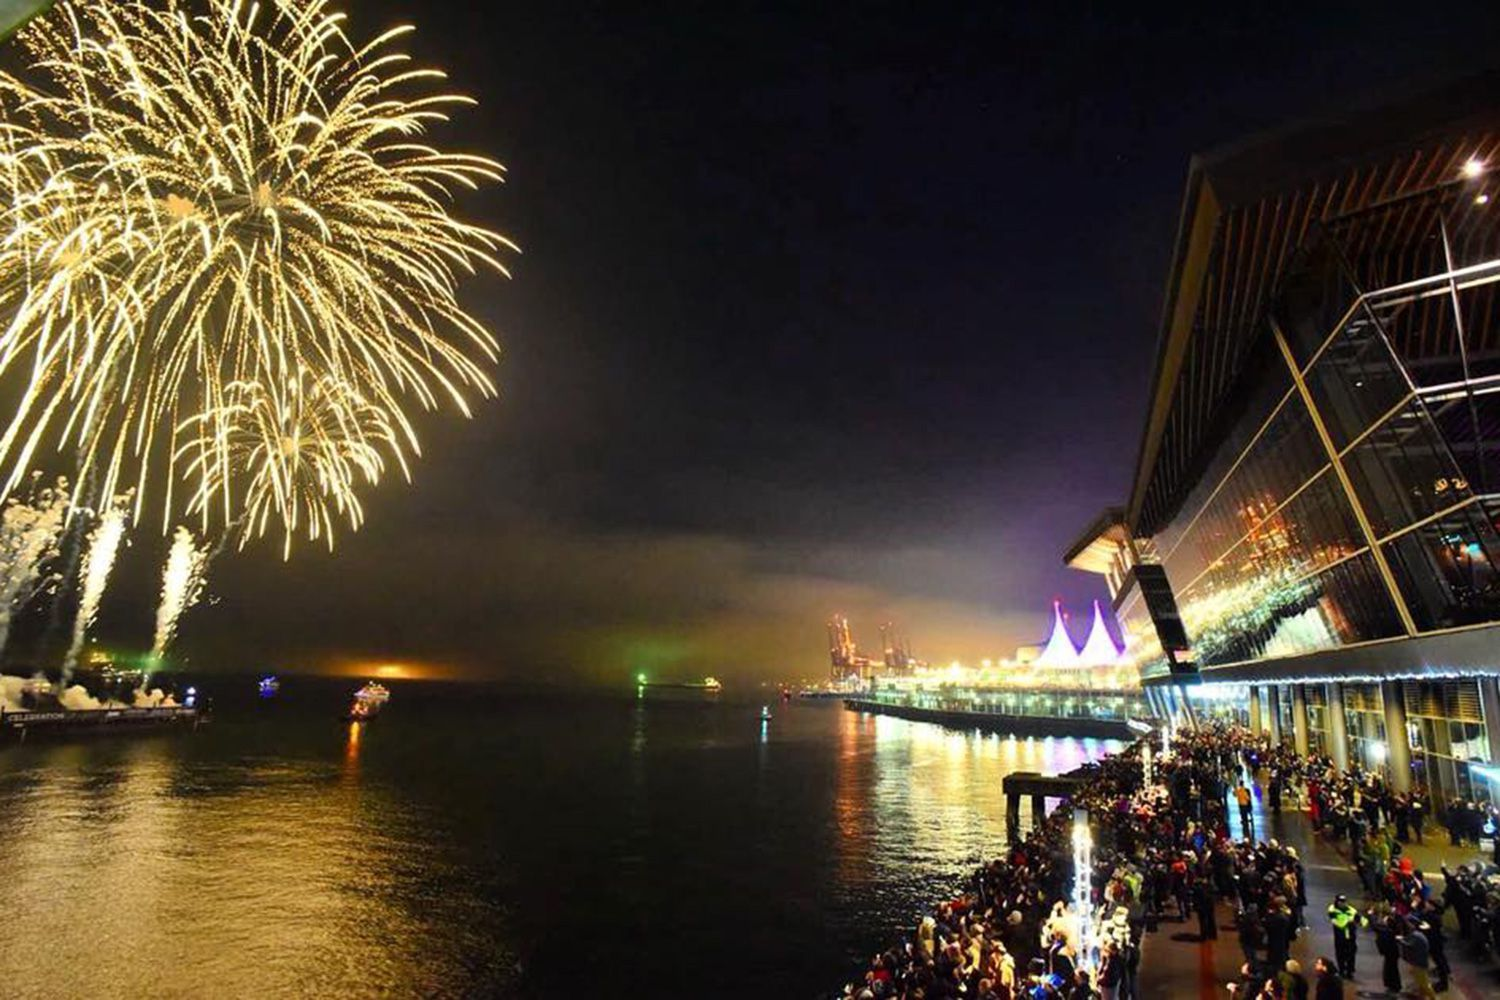 Celebrate New Year S Eve With Your Family At These Vancouver Events Celebrate Eve Events Family Va In 2020 Family New Years Eve New Years Eve New Years Eve Events